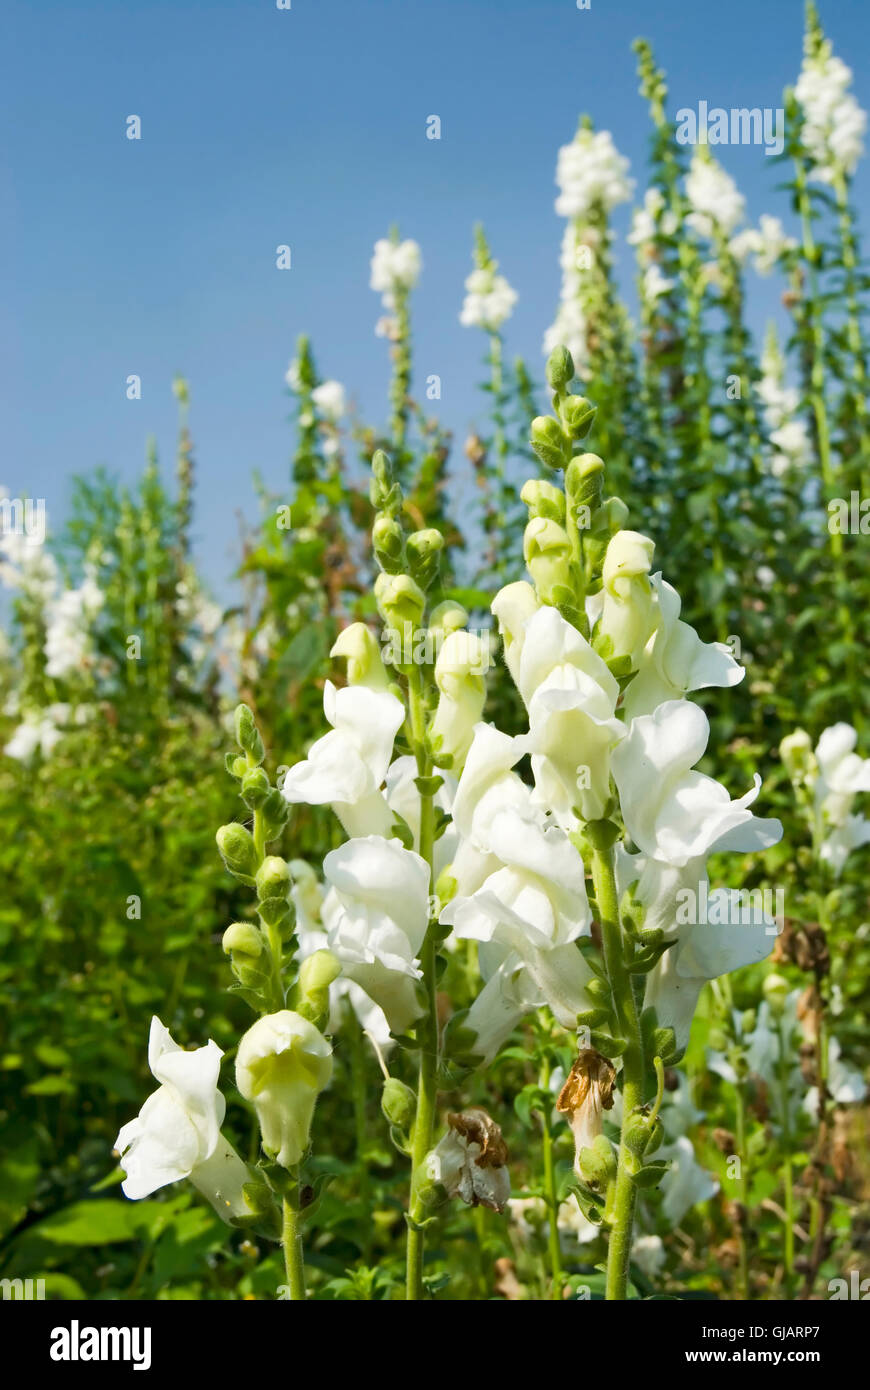 Wild Snapdragon Flowers Stock Photos Wild Snapdragon Flowers Stock